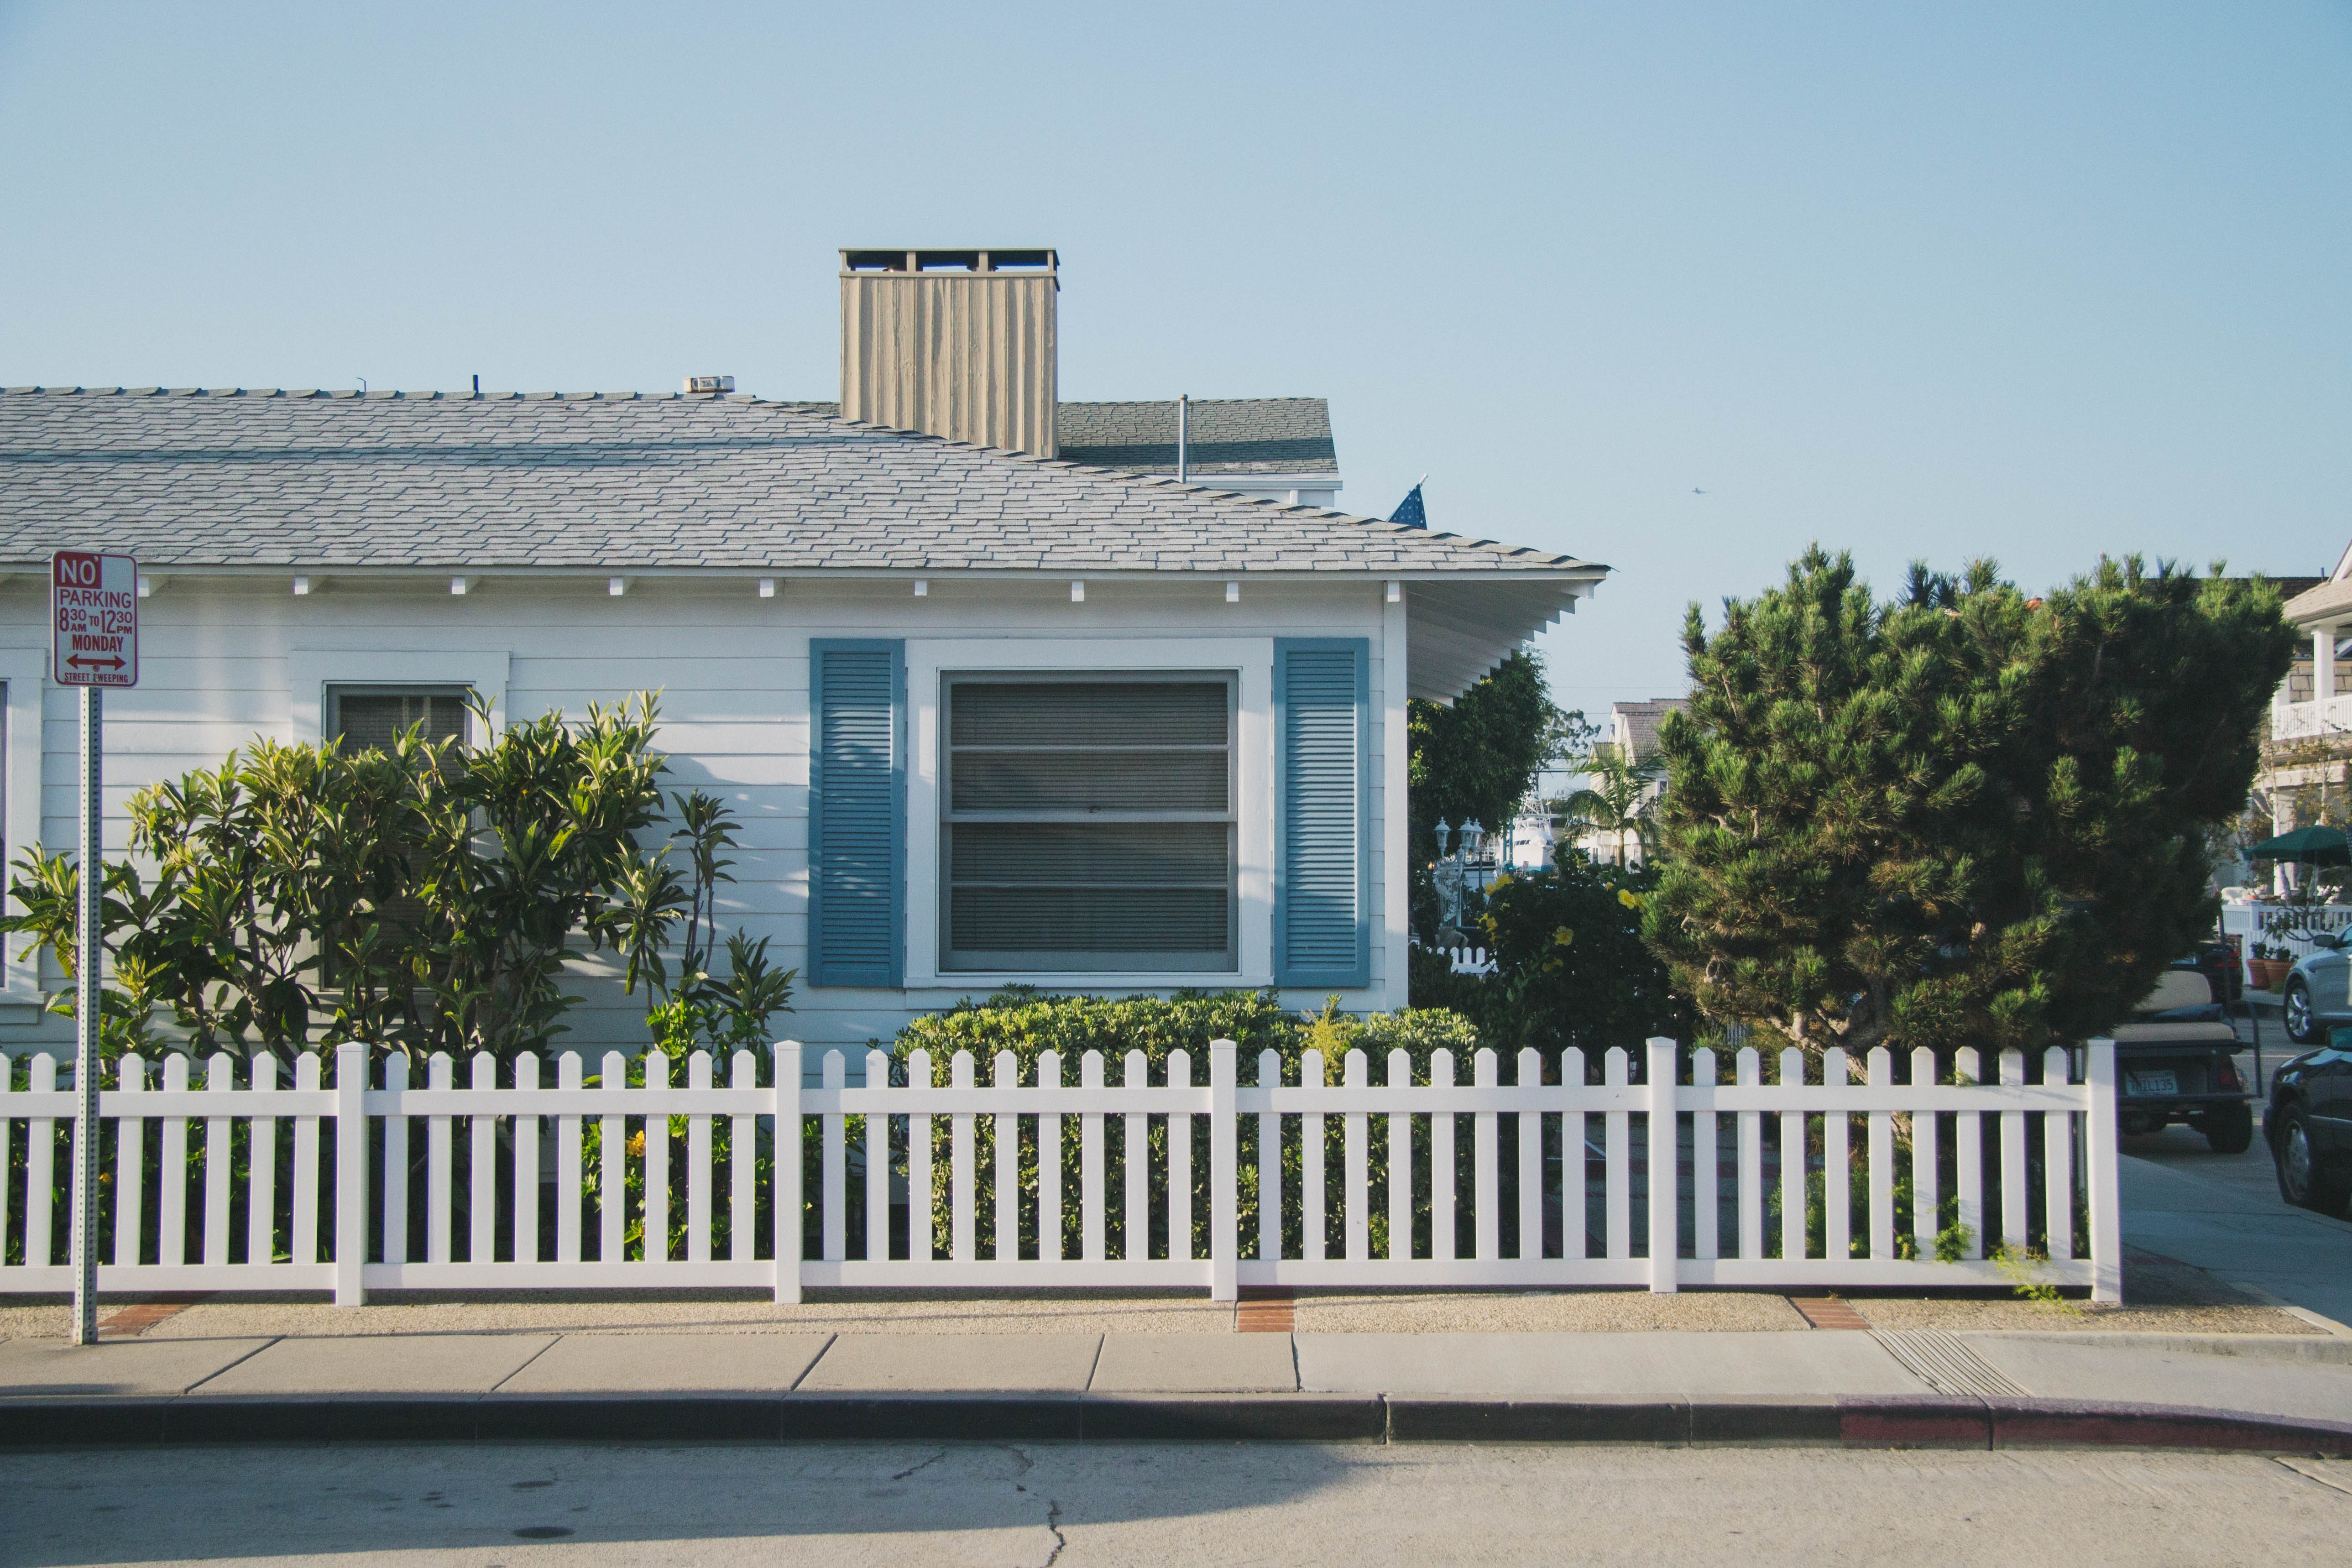 white and blue house beside fence